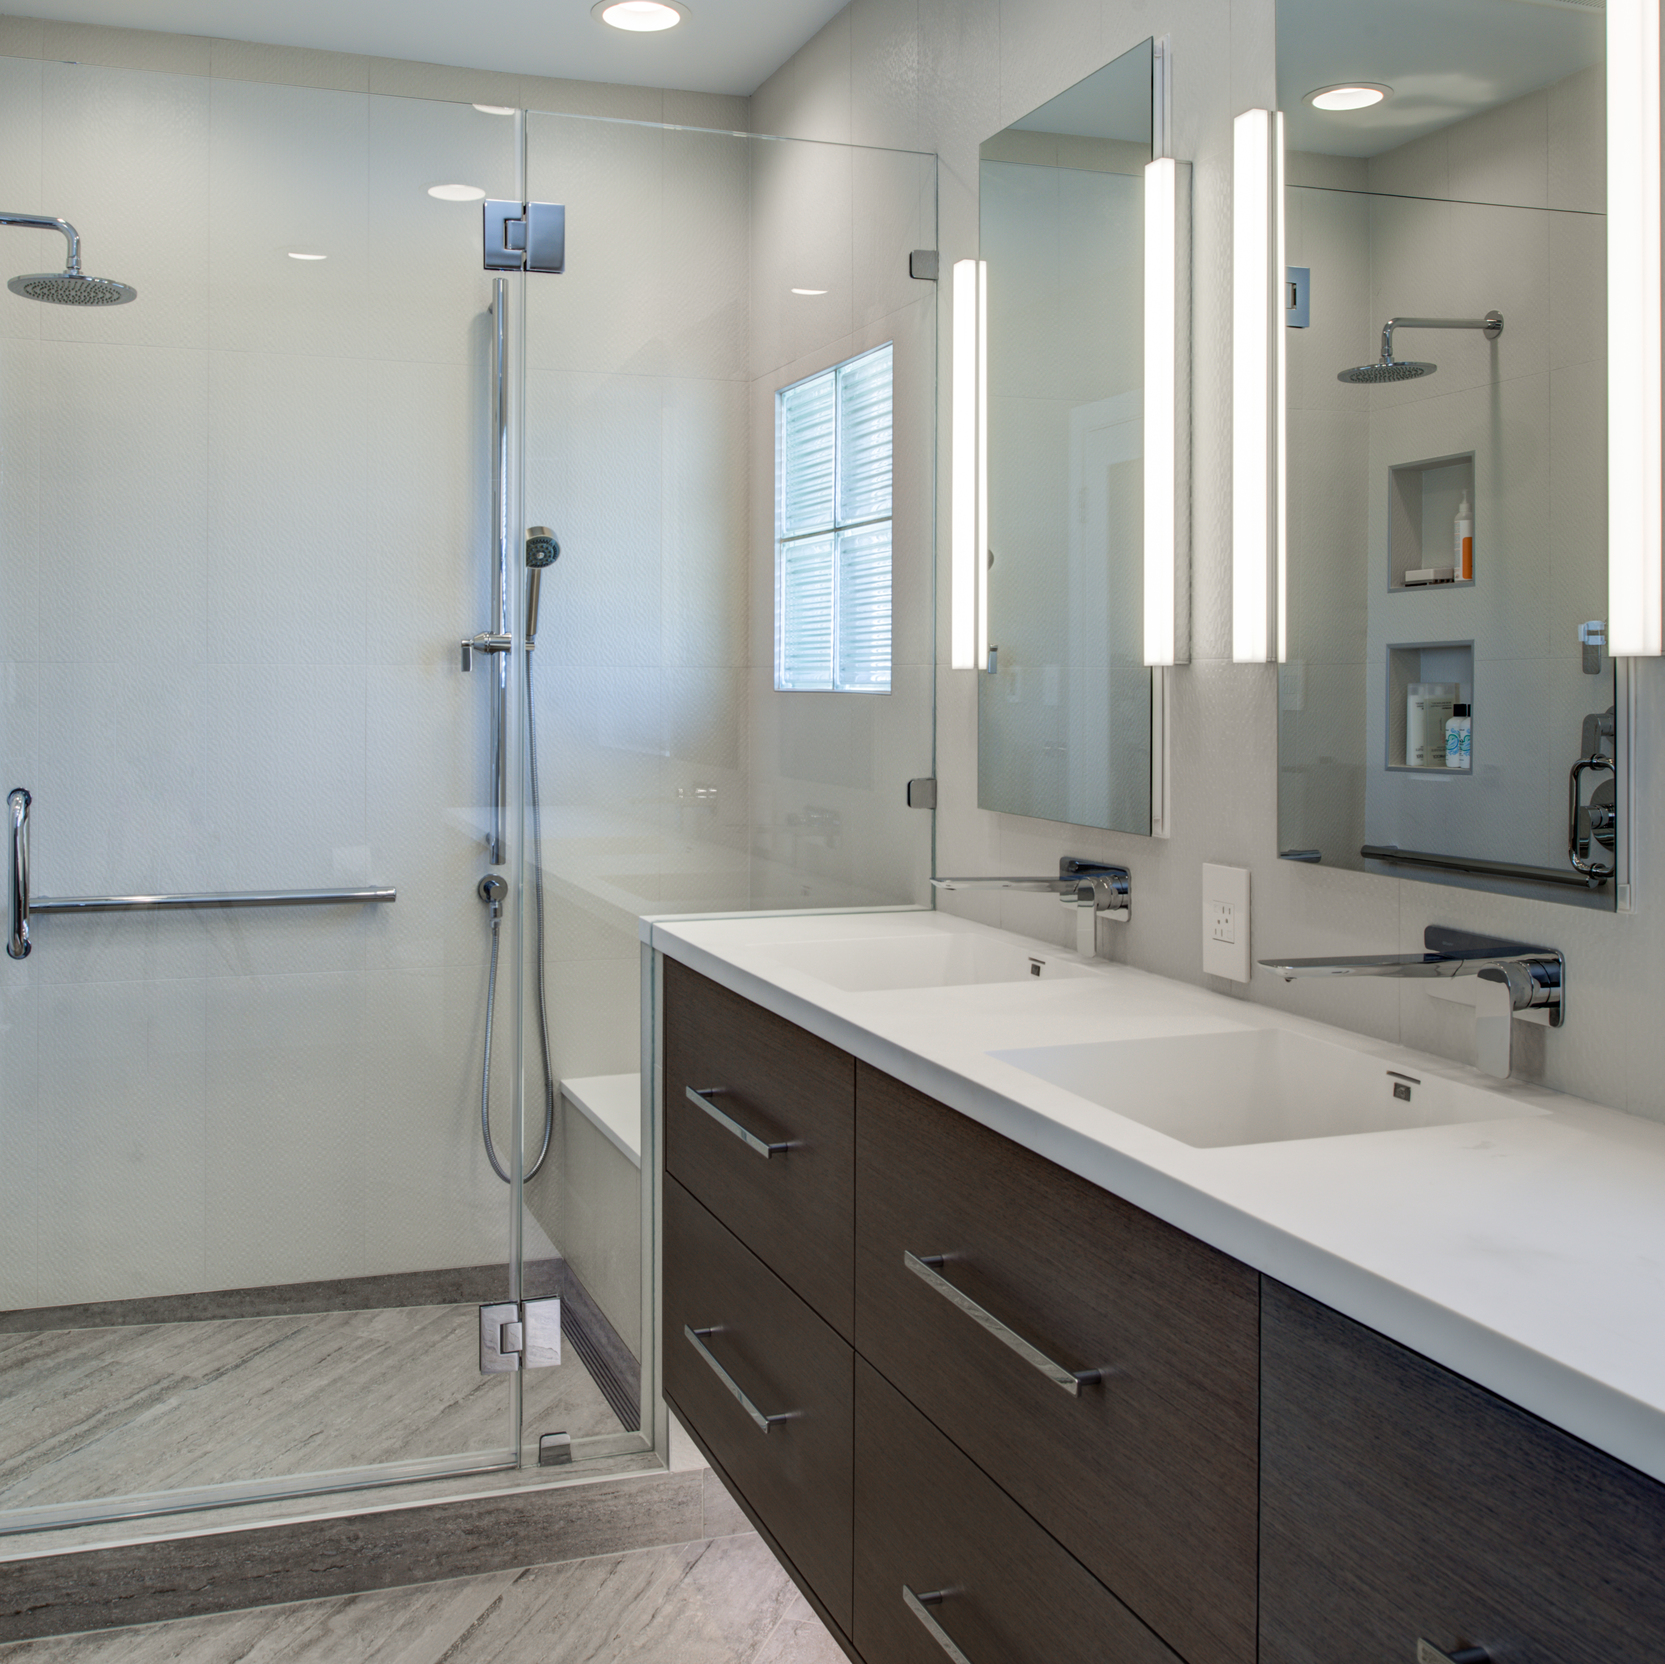 Berkeley Thousand Oaks Modern Master Bathroom  Regional Winner of the 2017 CoTY (Contractor of The Year Awards) through the National Association of the Remodeling Industry!  & 2016 REMMIE Winner through the National Association of the Remodeling Industry